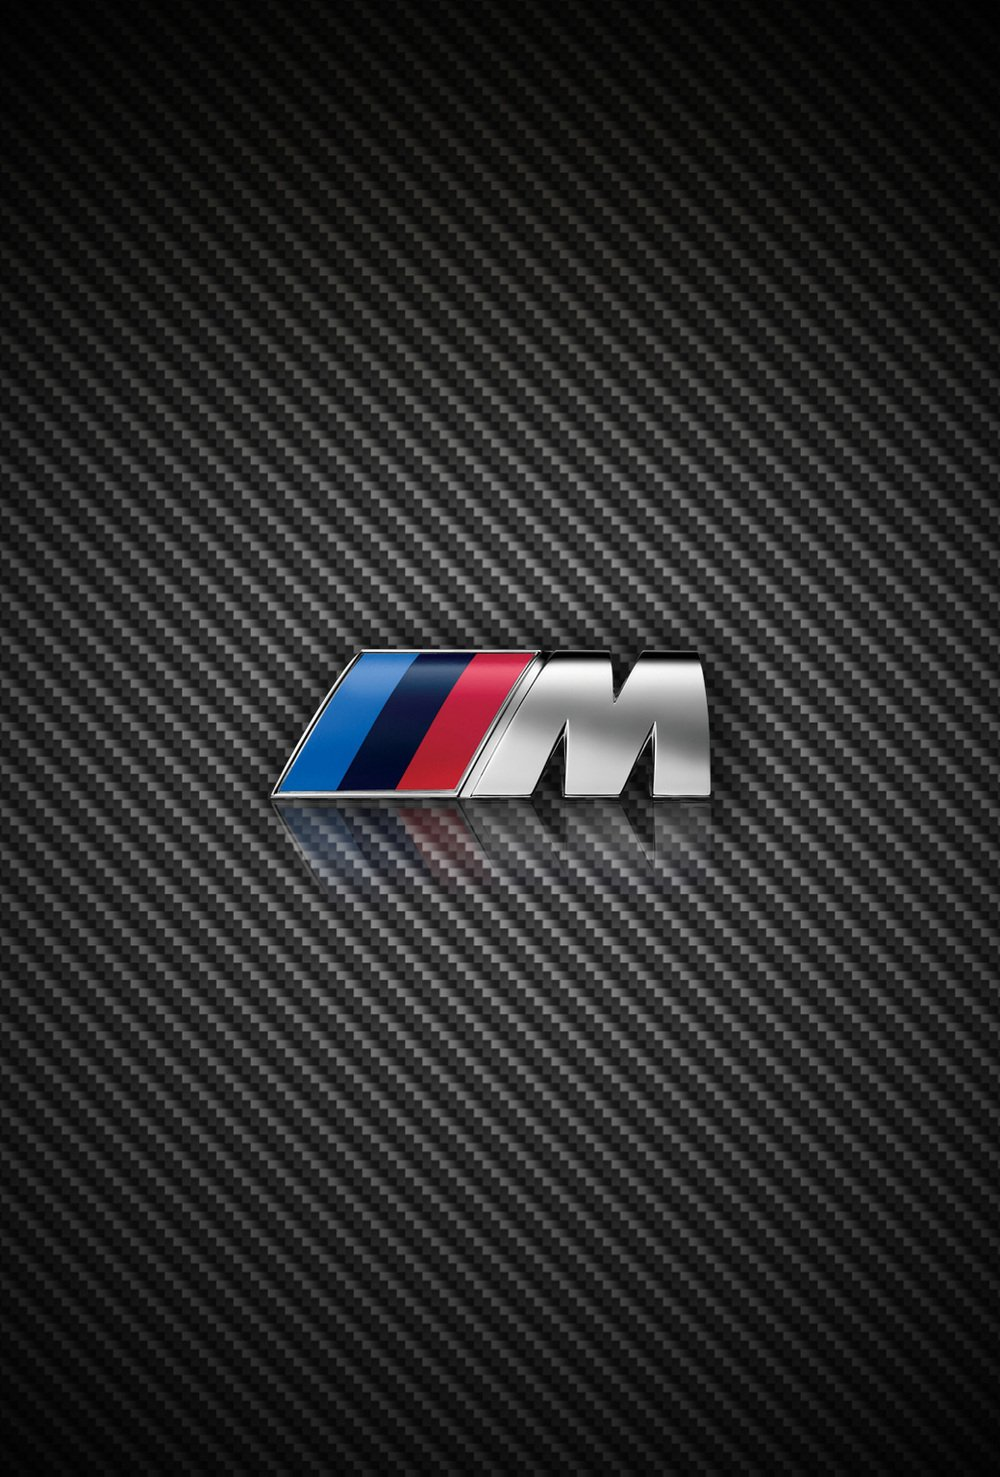 Carbon Fiber BMW and M Power iPhone wallpapers for iOS 7 parallax 1000x1477